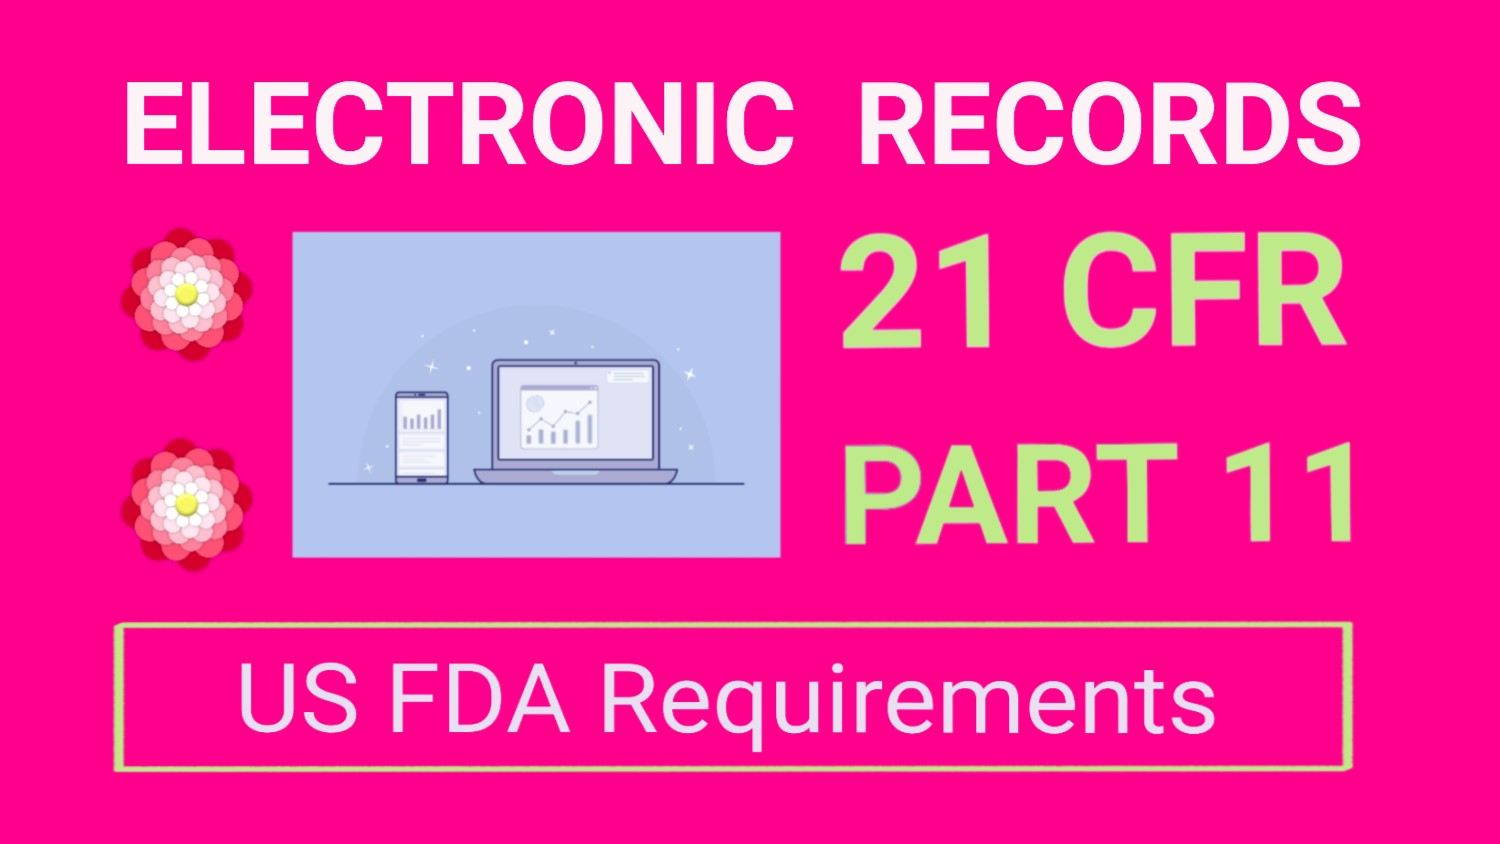 Electronic Records-21 CFR Part 11